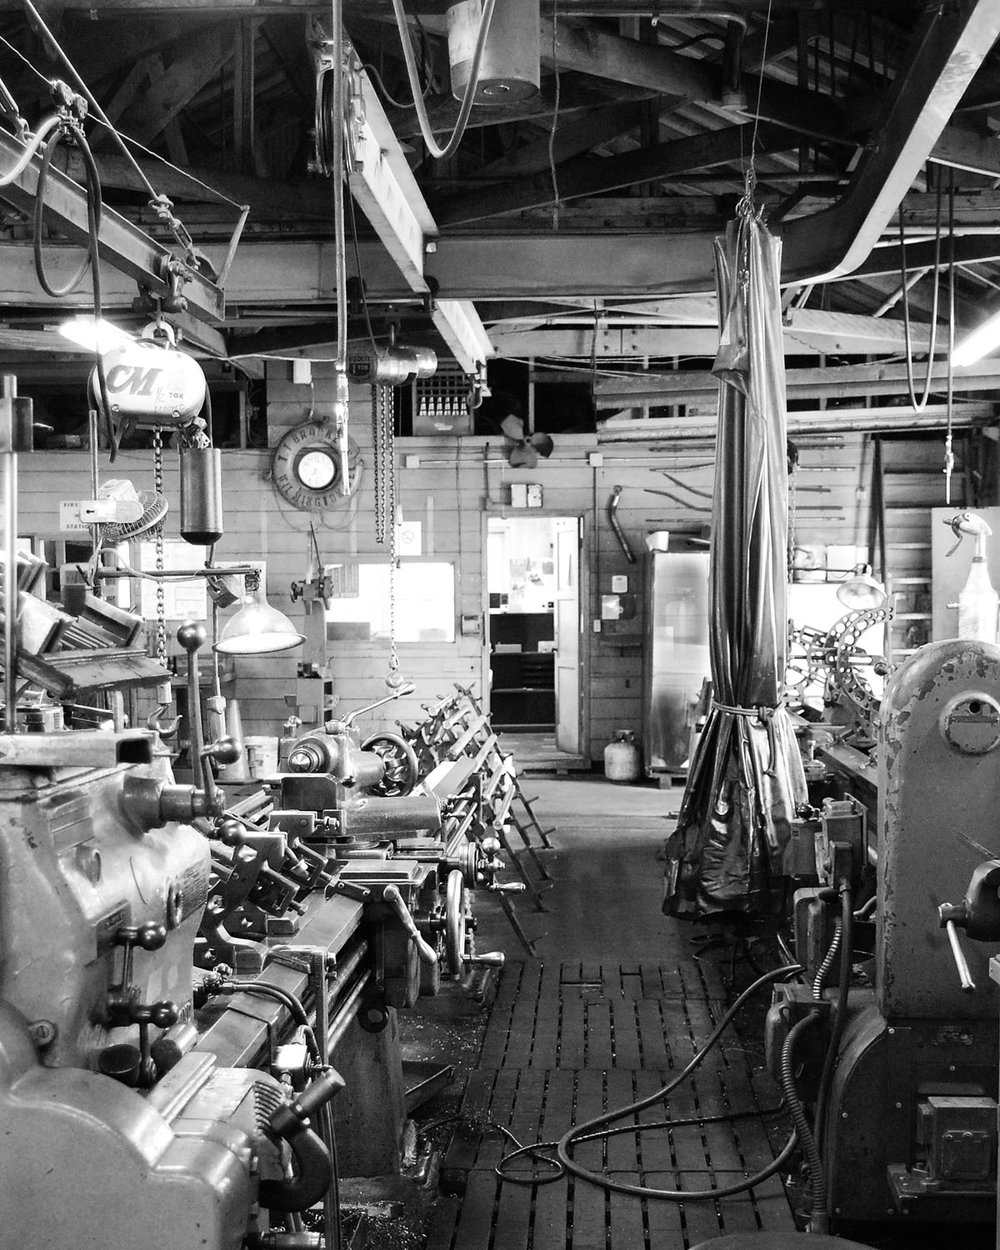 The machine shop at wilmingtonironworks.com